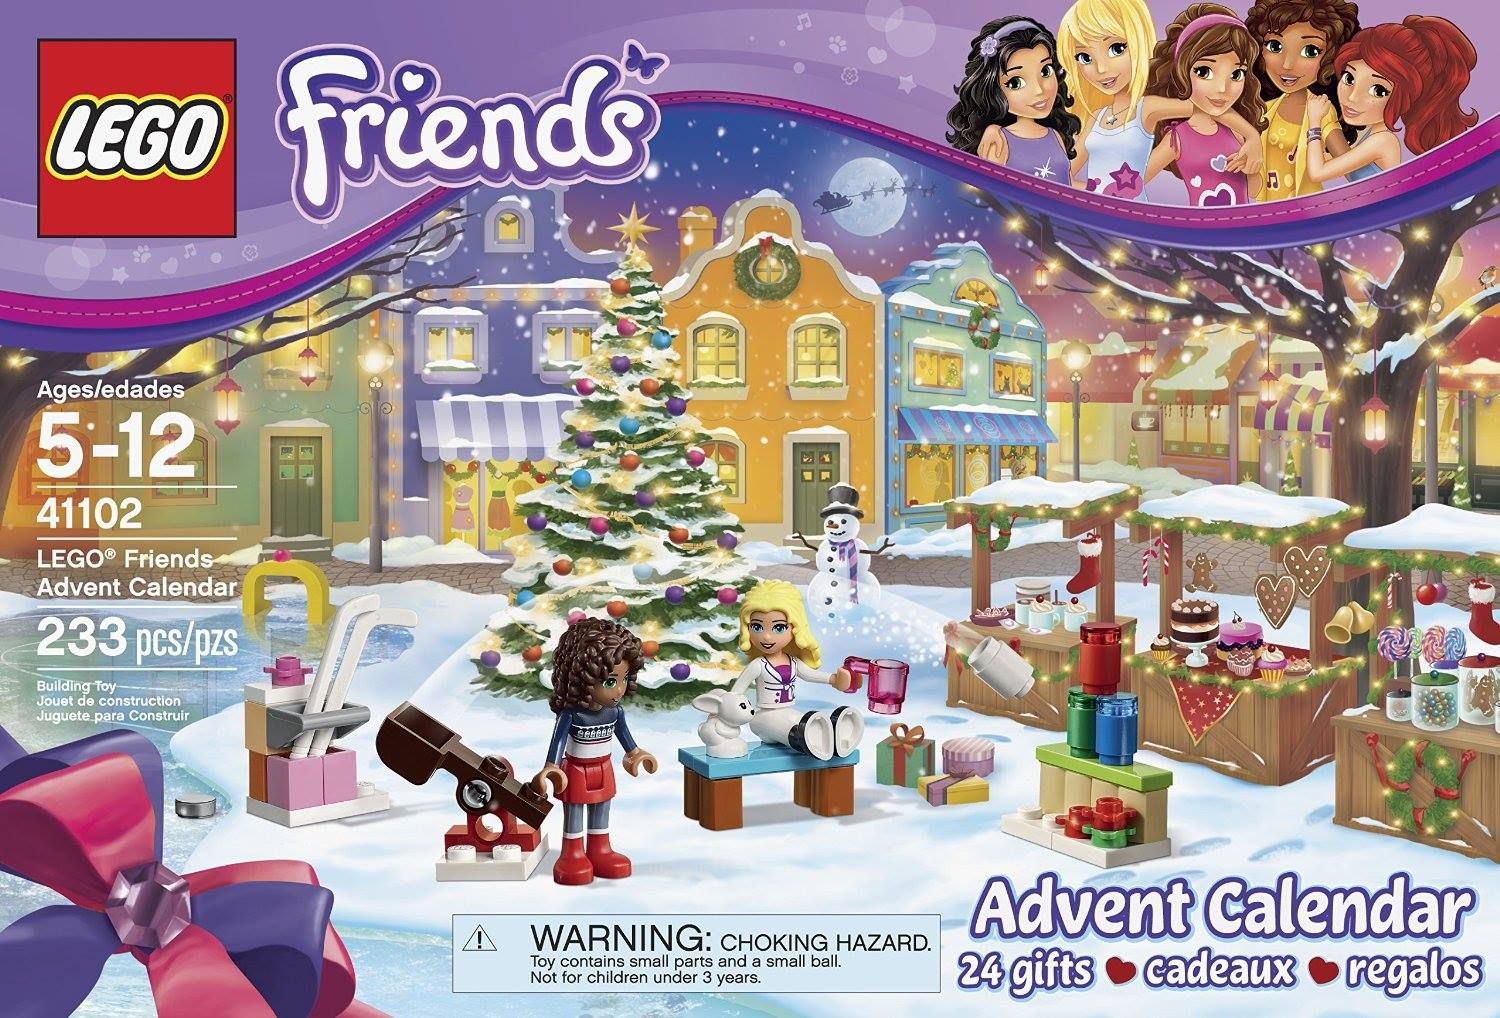 LEGO Seasonal 41102 LEGO® Friends Adventskalender 2015 41102-1_img01.jpg